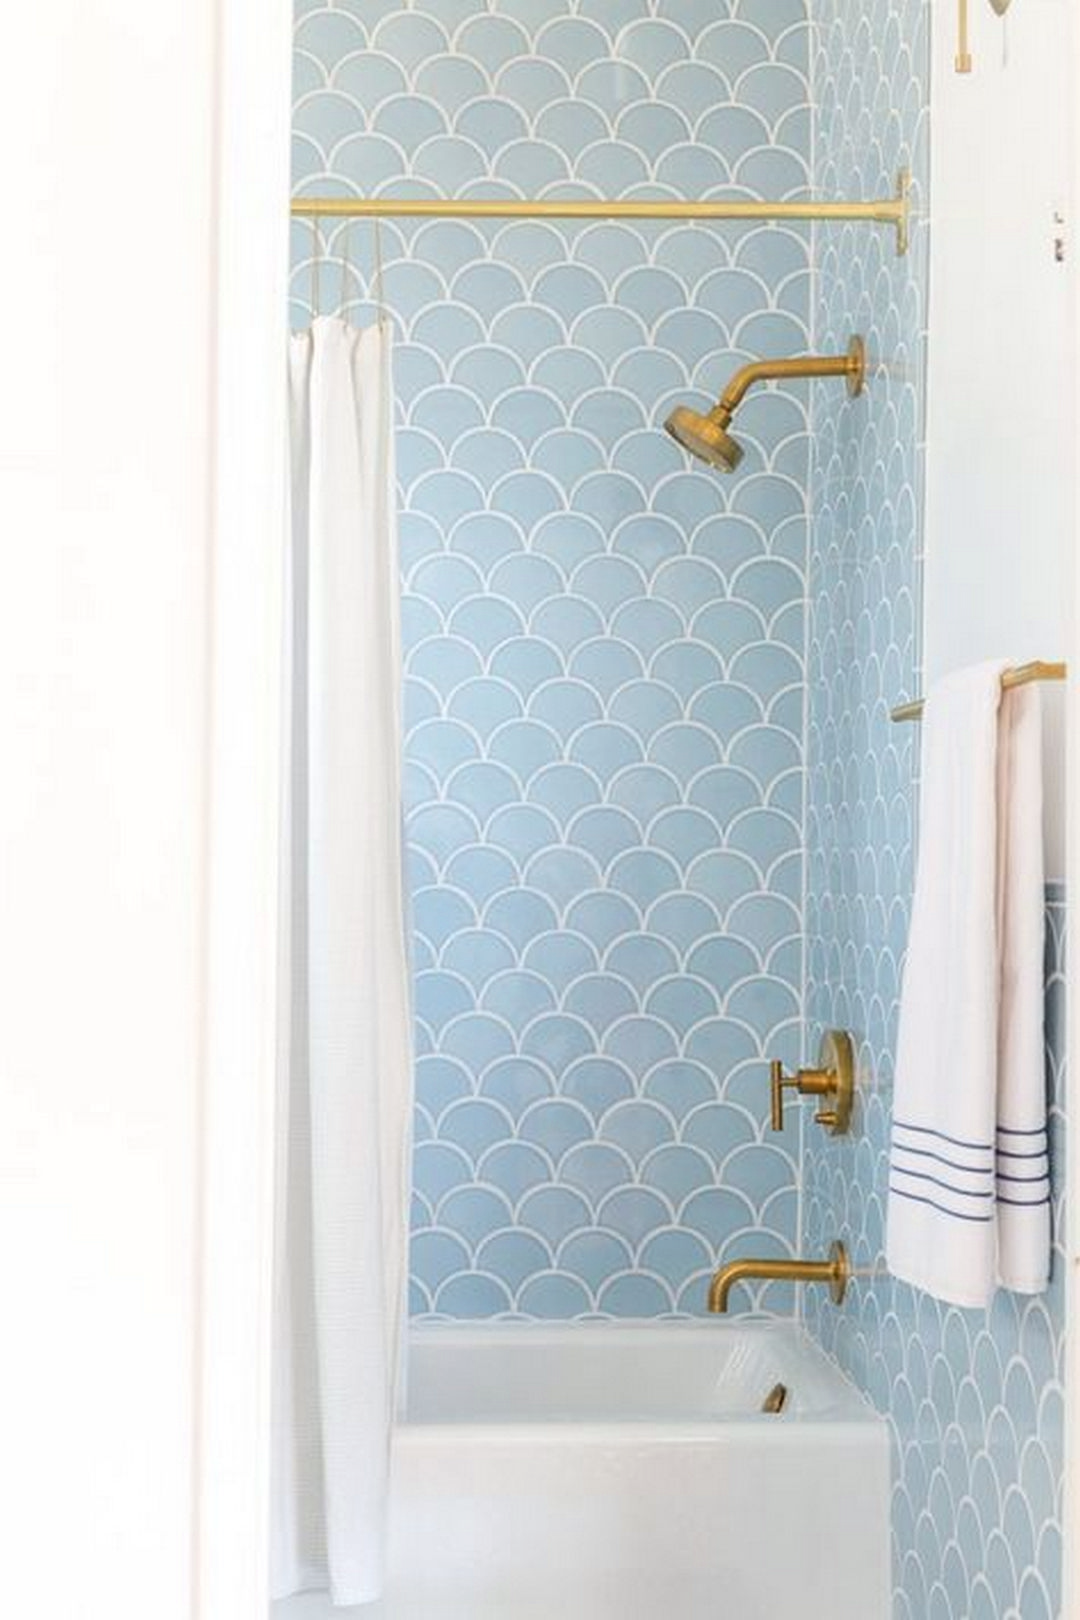 38 Beautiful Fish Scale Tile Bathroom Ideas | Fish scale tile ...